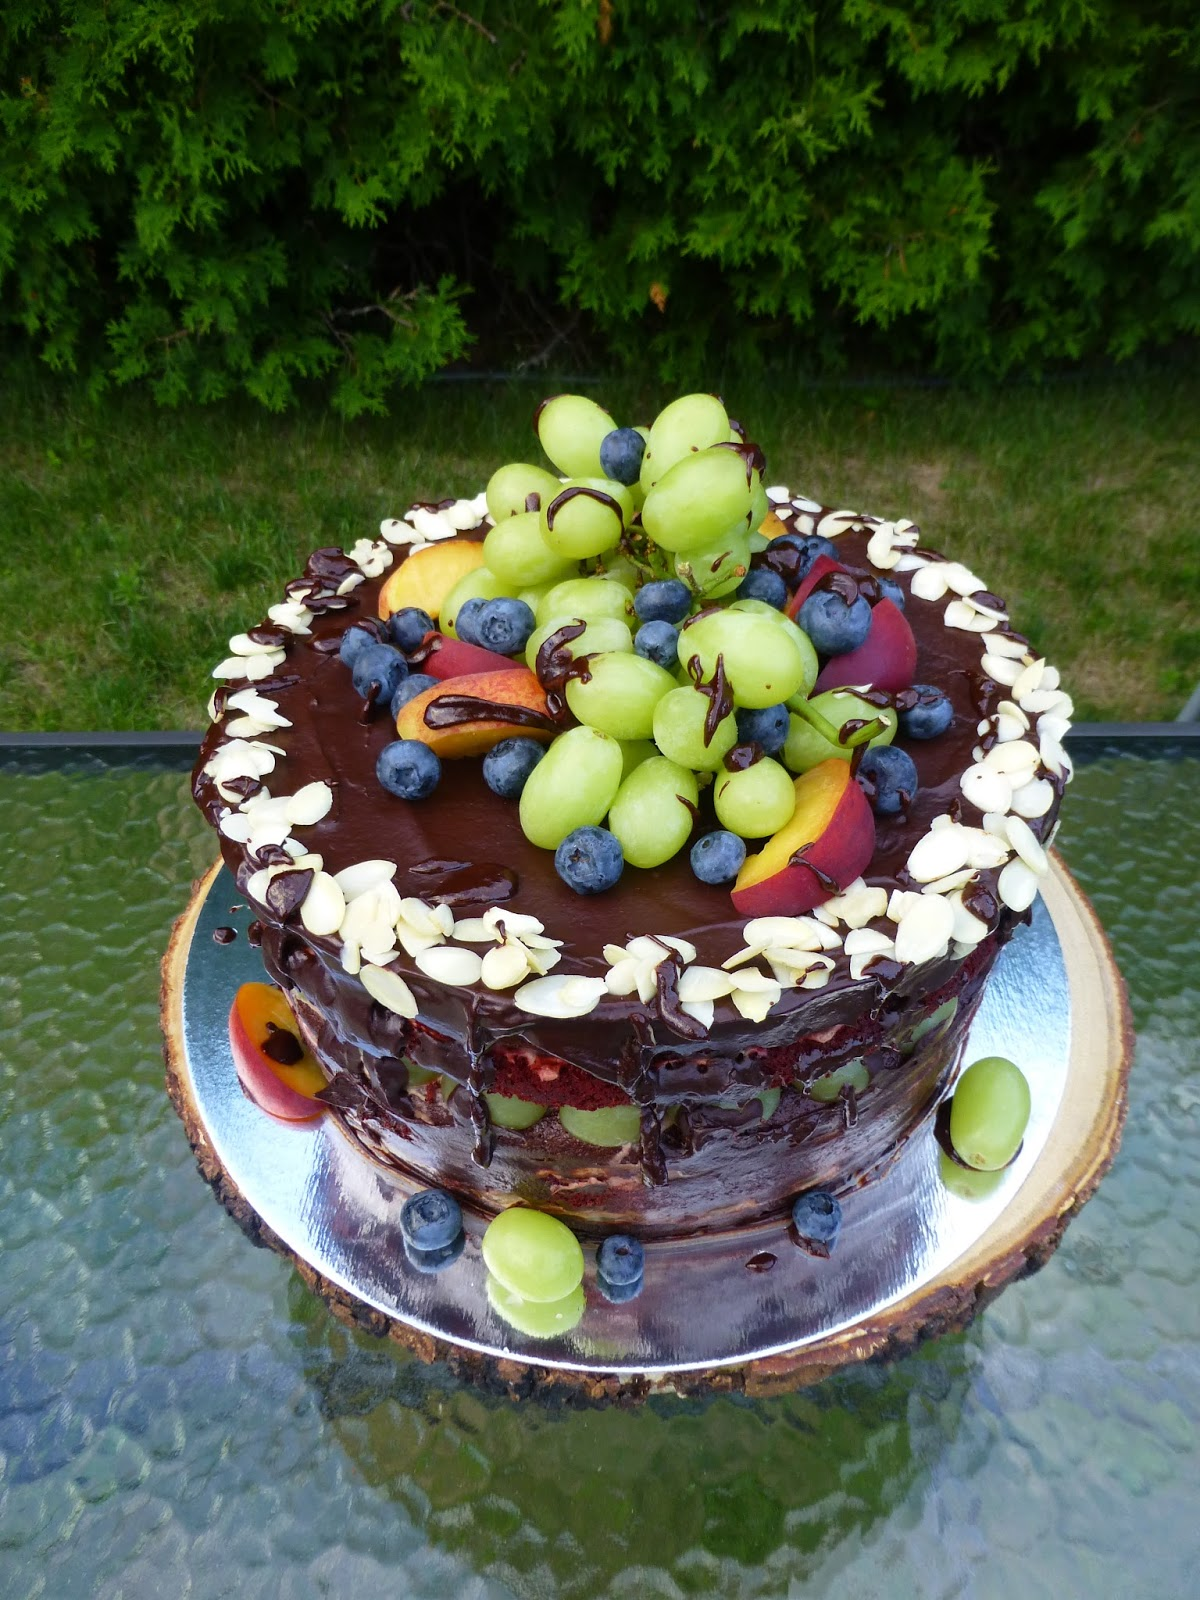 This Time I Used Grapes Peaches And Blueberries The Decoration Is Chocolate Ganache Finely Ground Almonds Fresh Fruits Happy Birthday